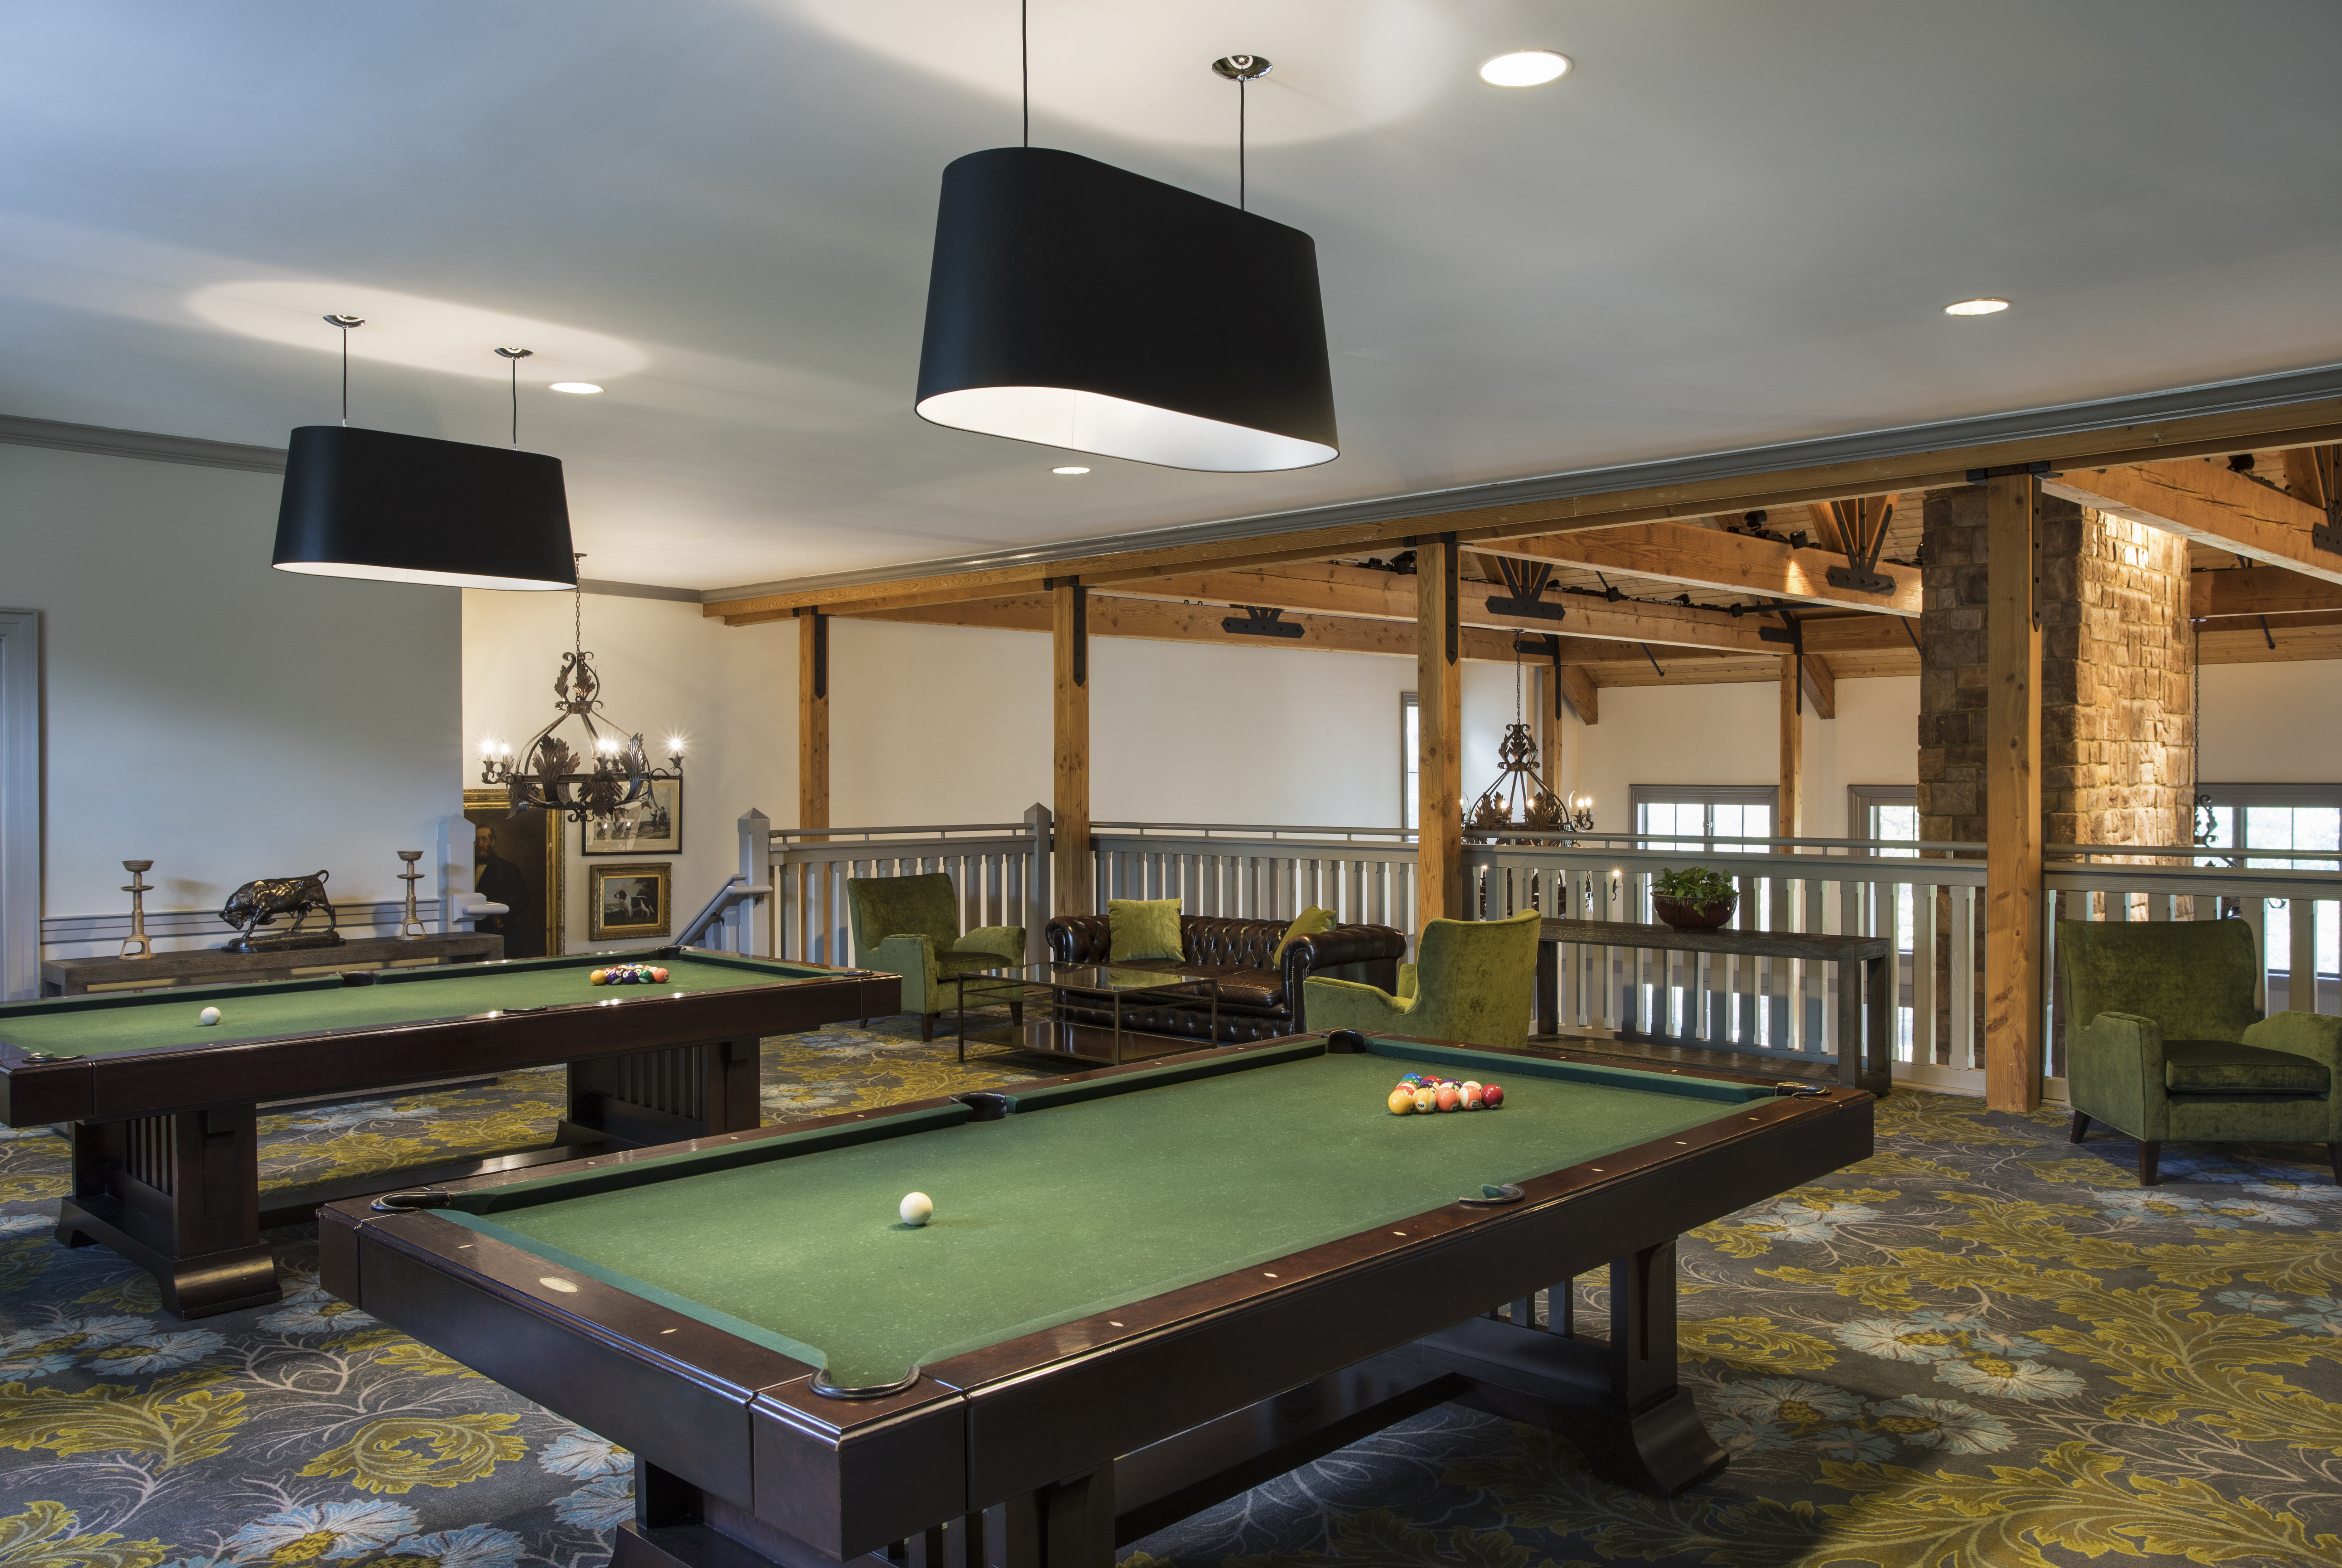 The design of the Lodge event space is meant to evoke traditional hunting lodges.